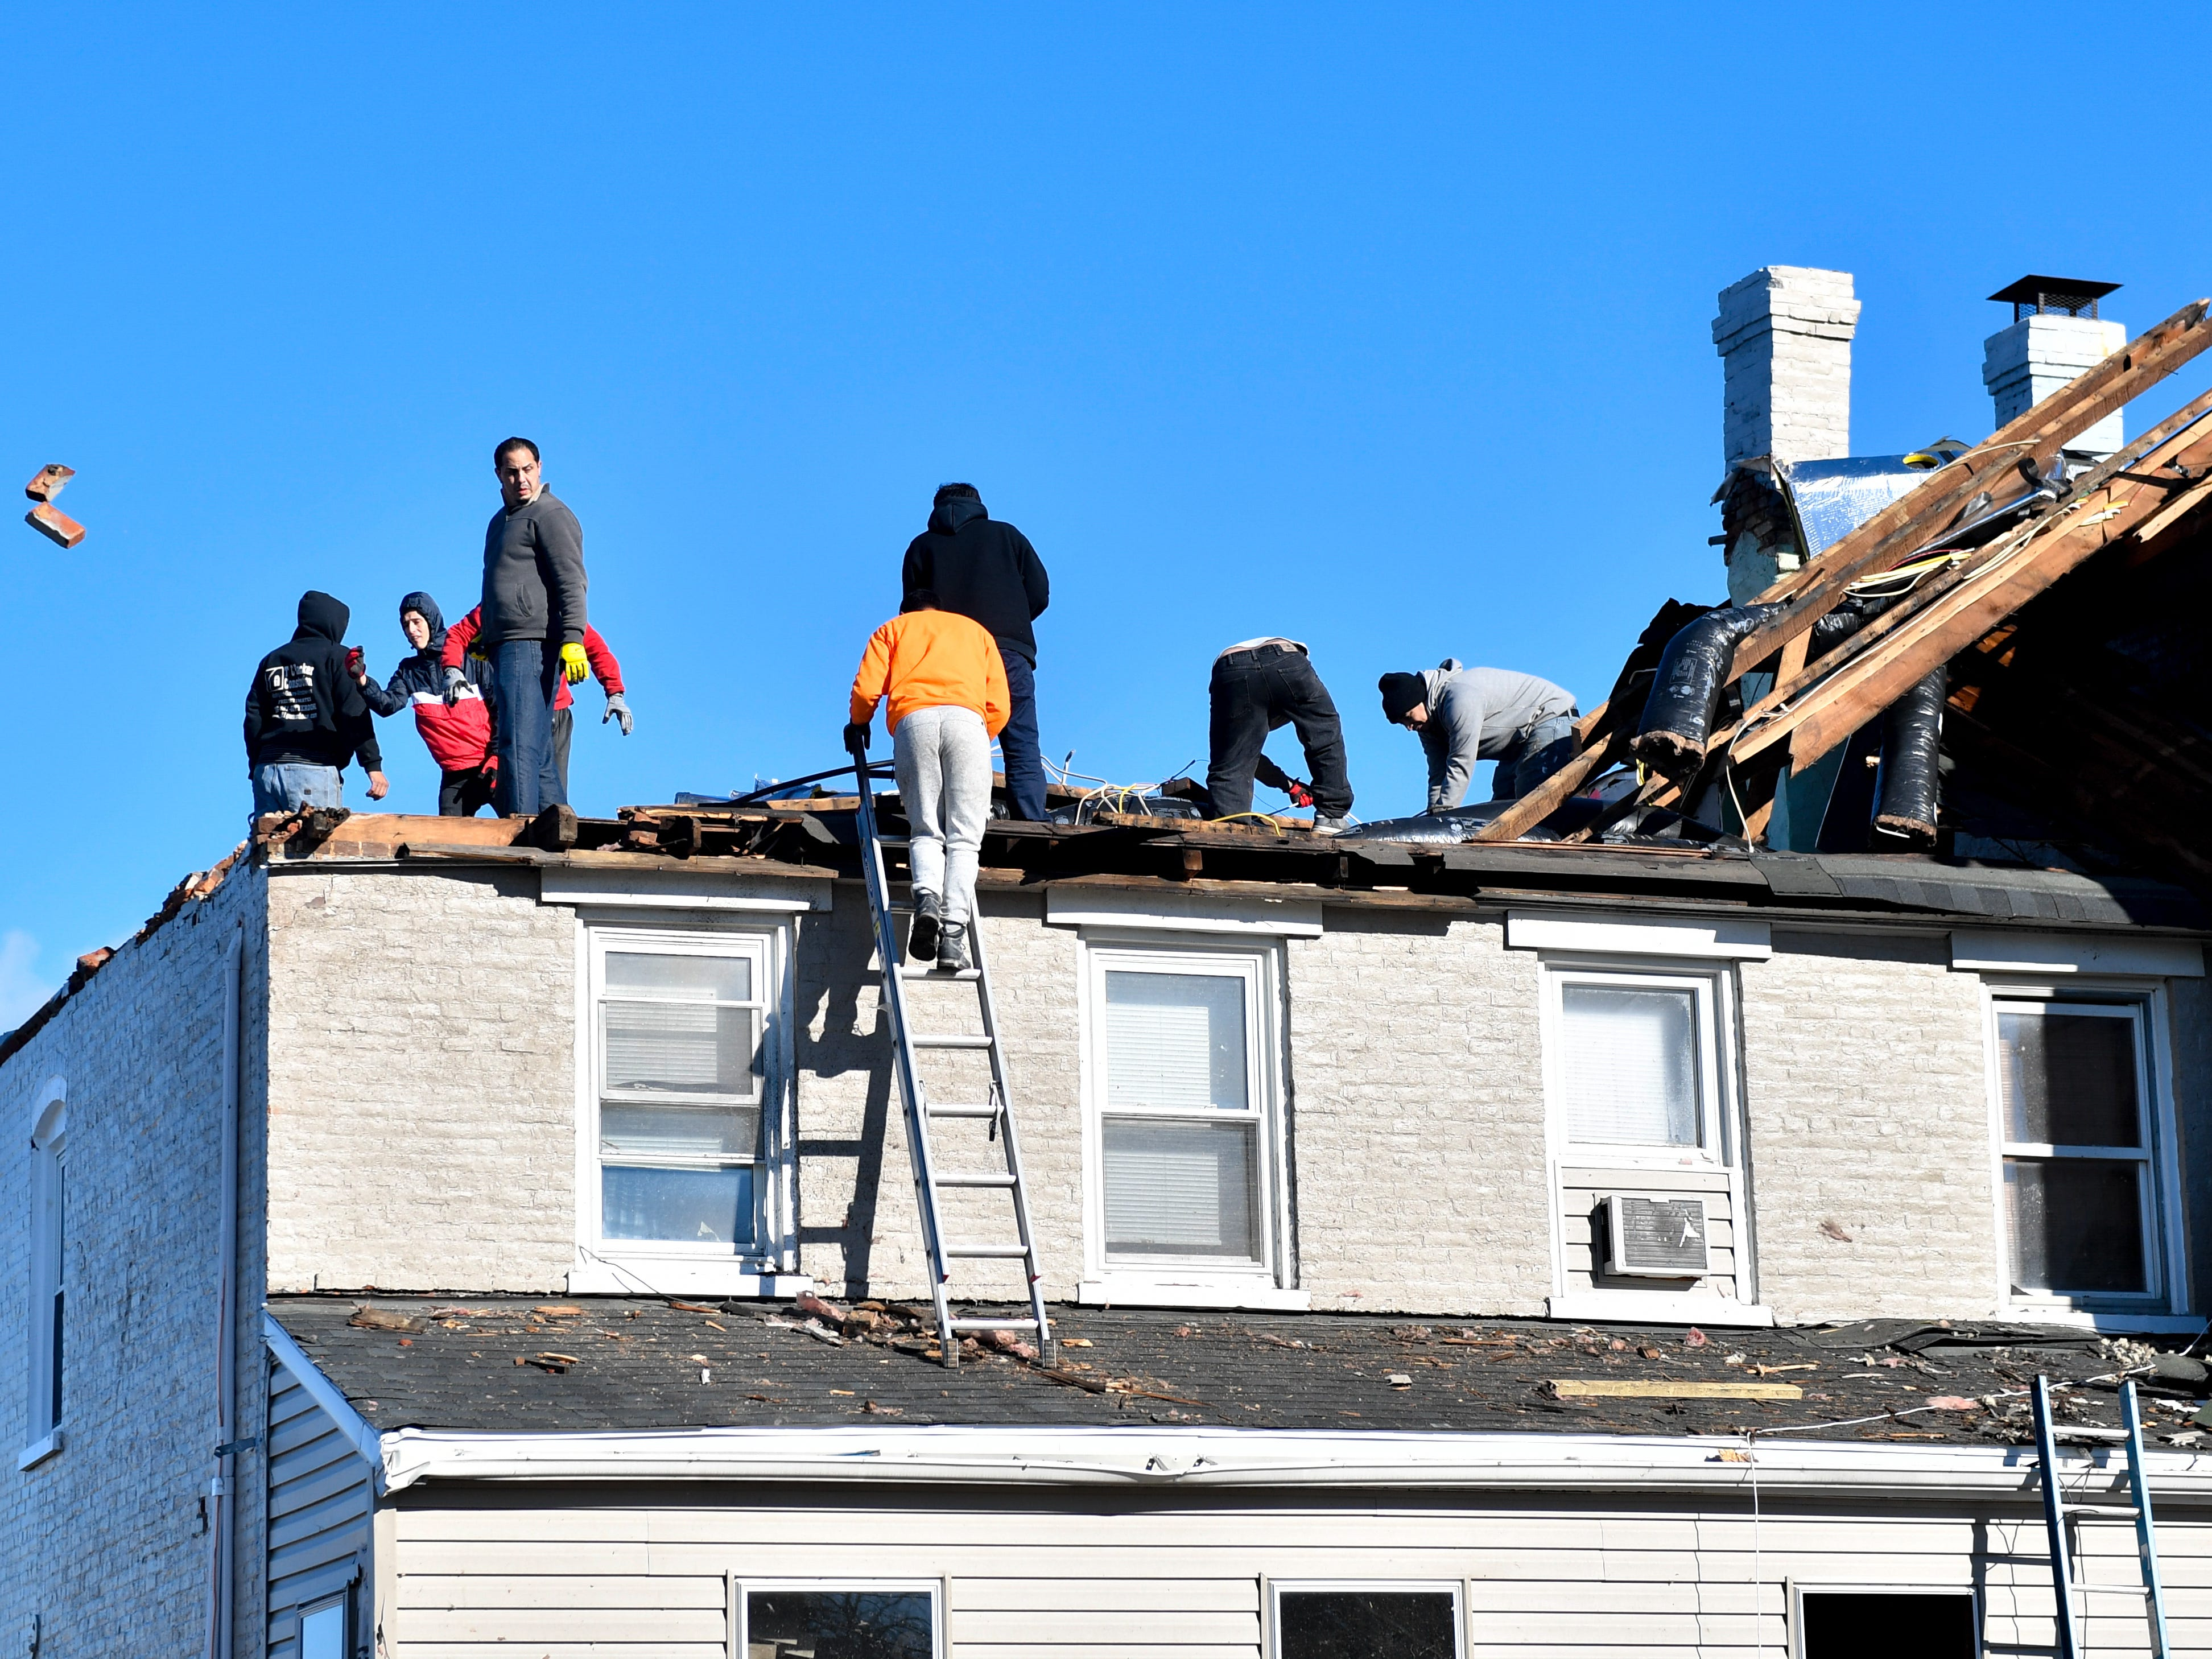 Workers salvage the roof and toss any debris off, November 3, 2018.